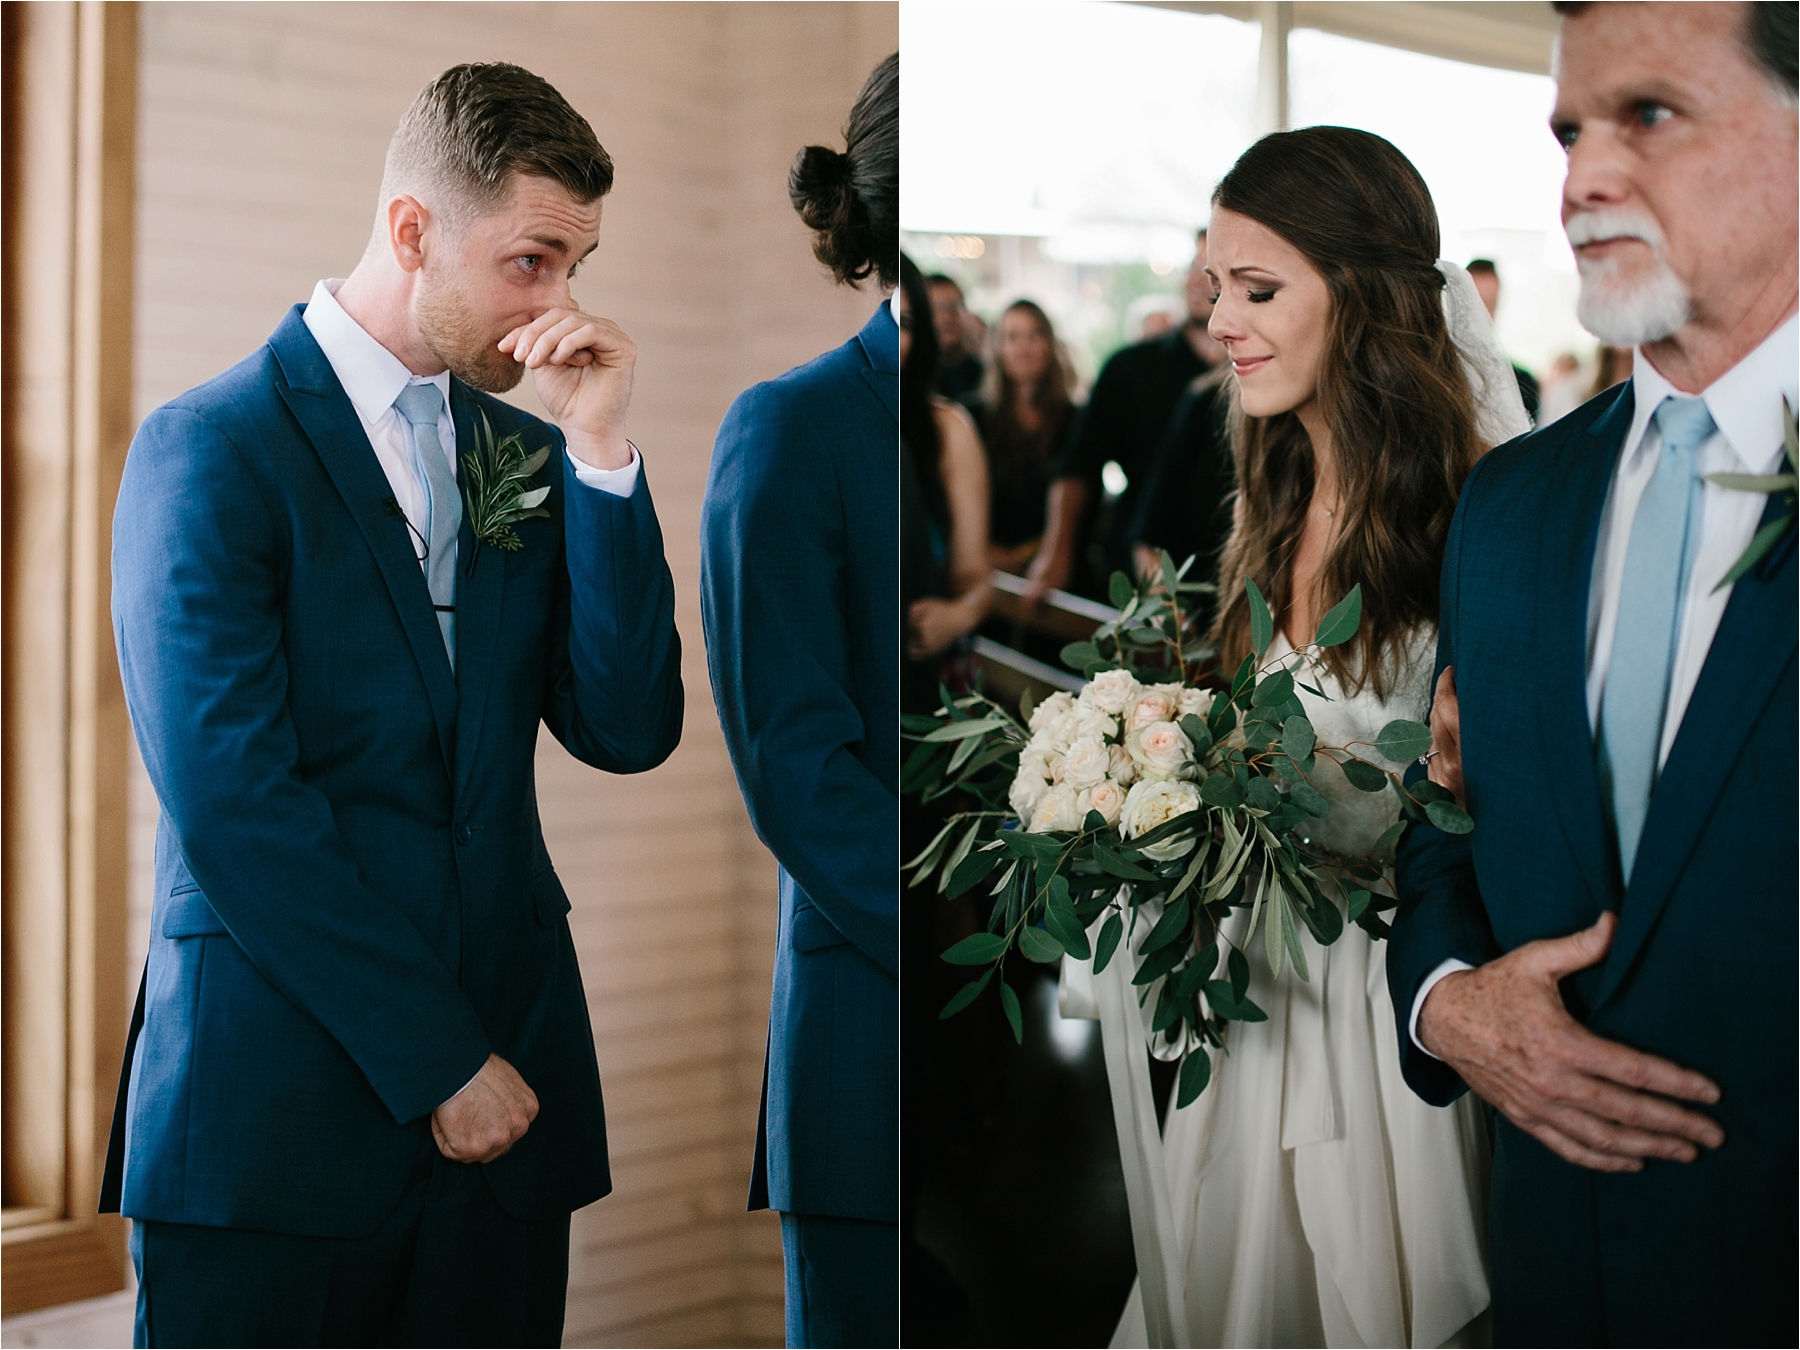 Lauren + Matt __ an intimate, emotional, blush pink, navy blue, and greenery toned wedding accents at the Brooks at Weatherford by North Texas Wedding Photographer Rachel Meagan Photography113